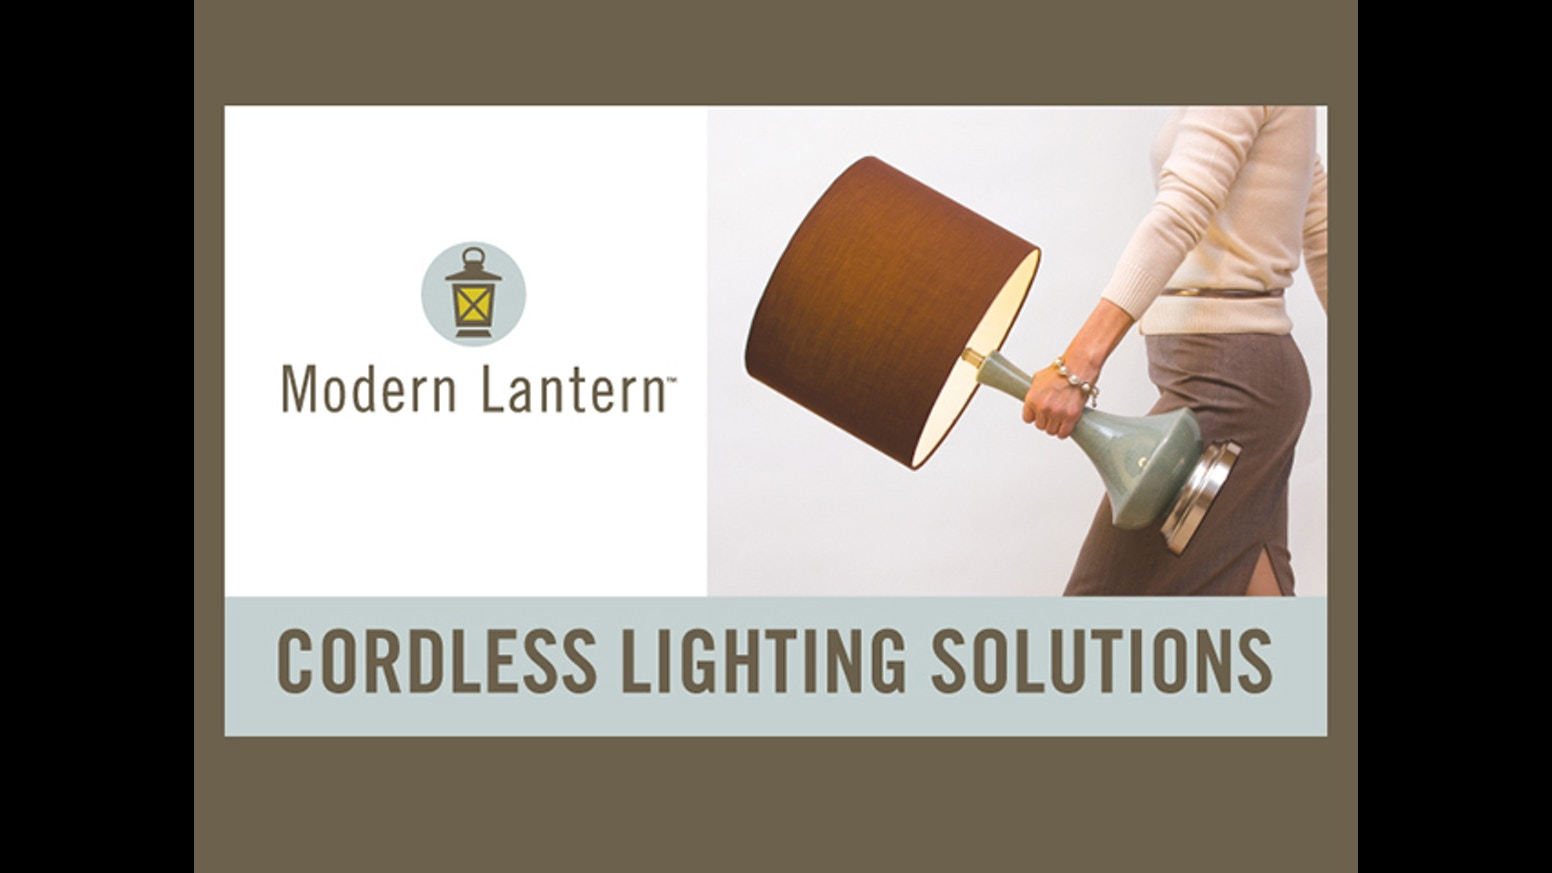 Cordless Lamps By Modern Lantern By Stephen Amp Carrie